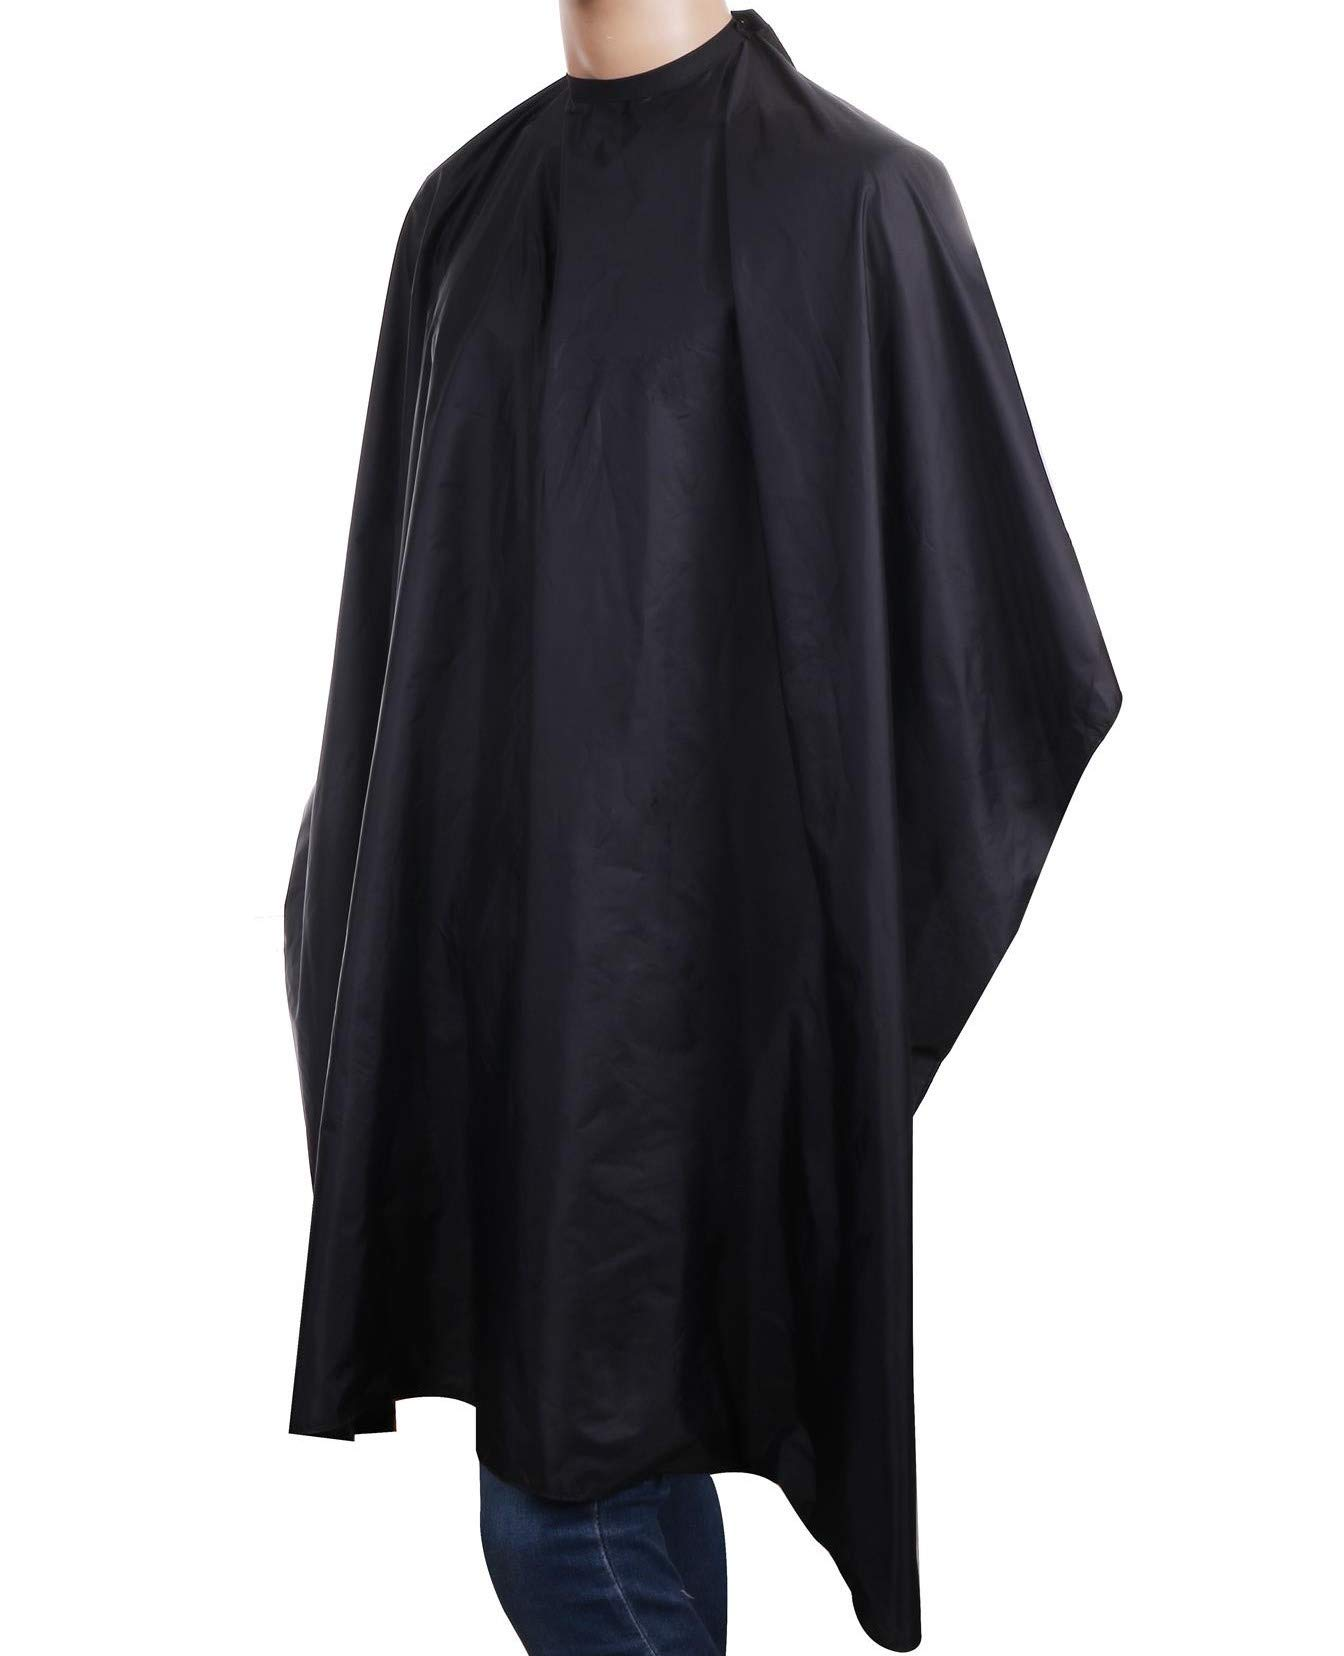 Salon Essentials Waterproof Professional Barber Cape With Snap Closure 100% Nylon Comfortable Material Black - 50'' x 60'' (1 Pack) by Salon Essentials